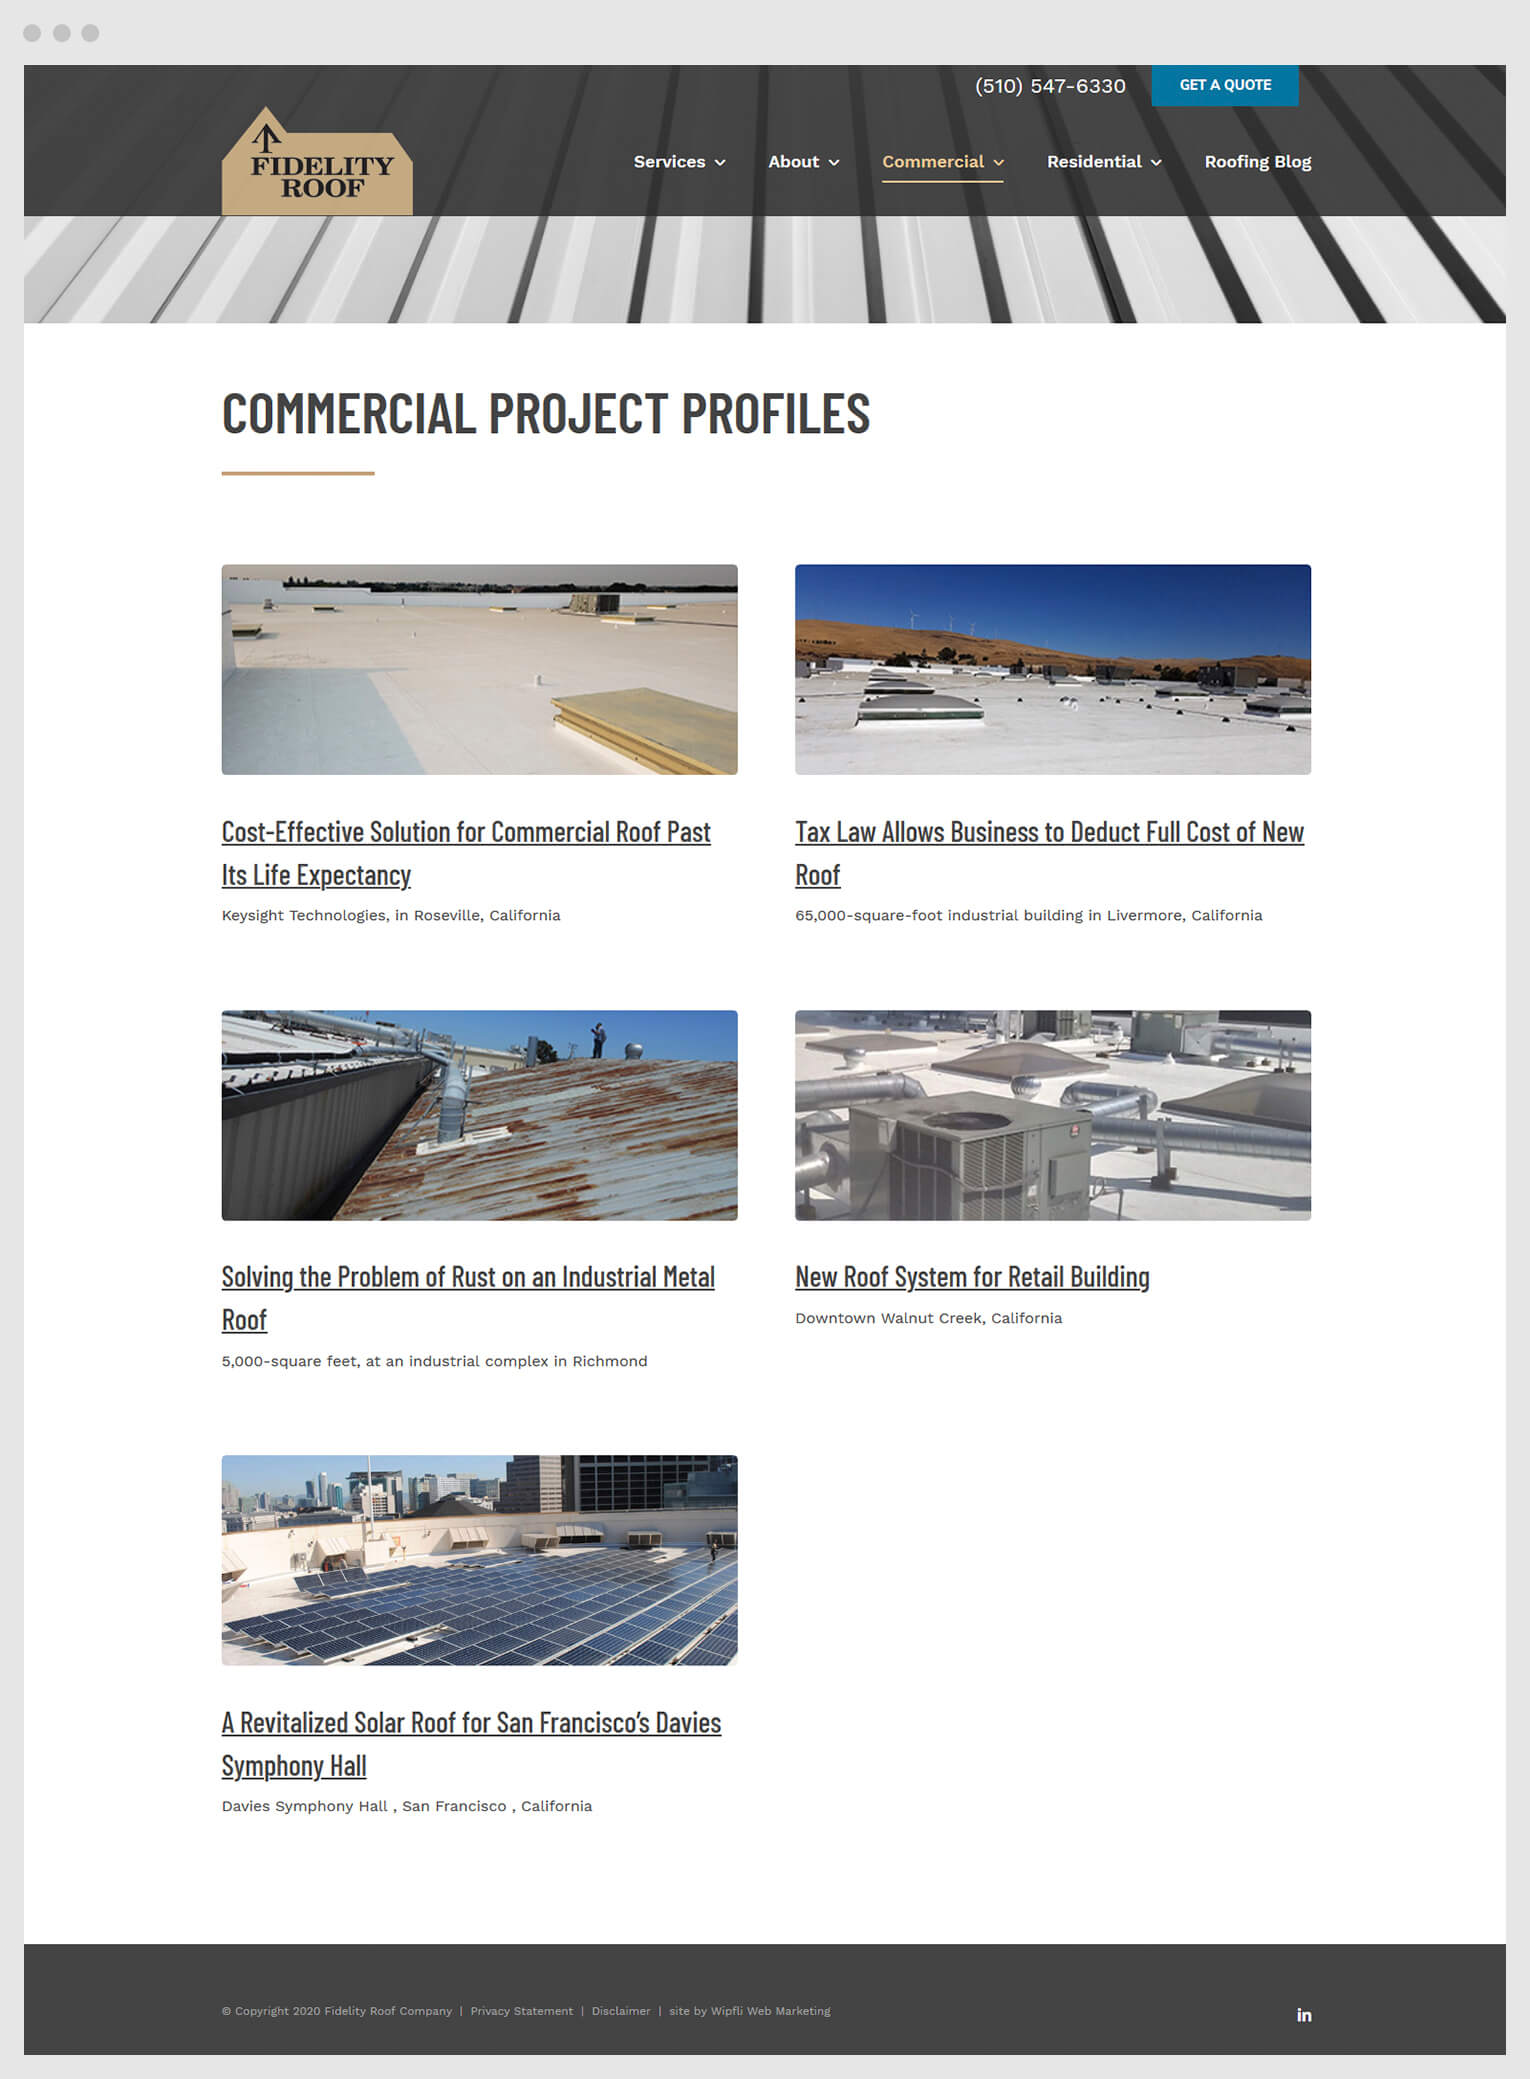 Screenshot of the Fidelity Roof commercial case study page